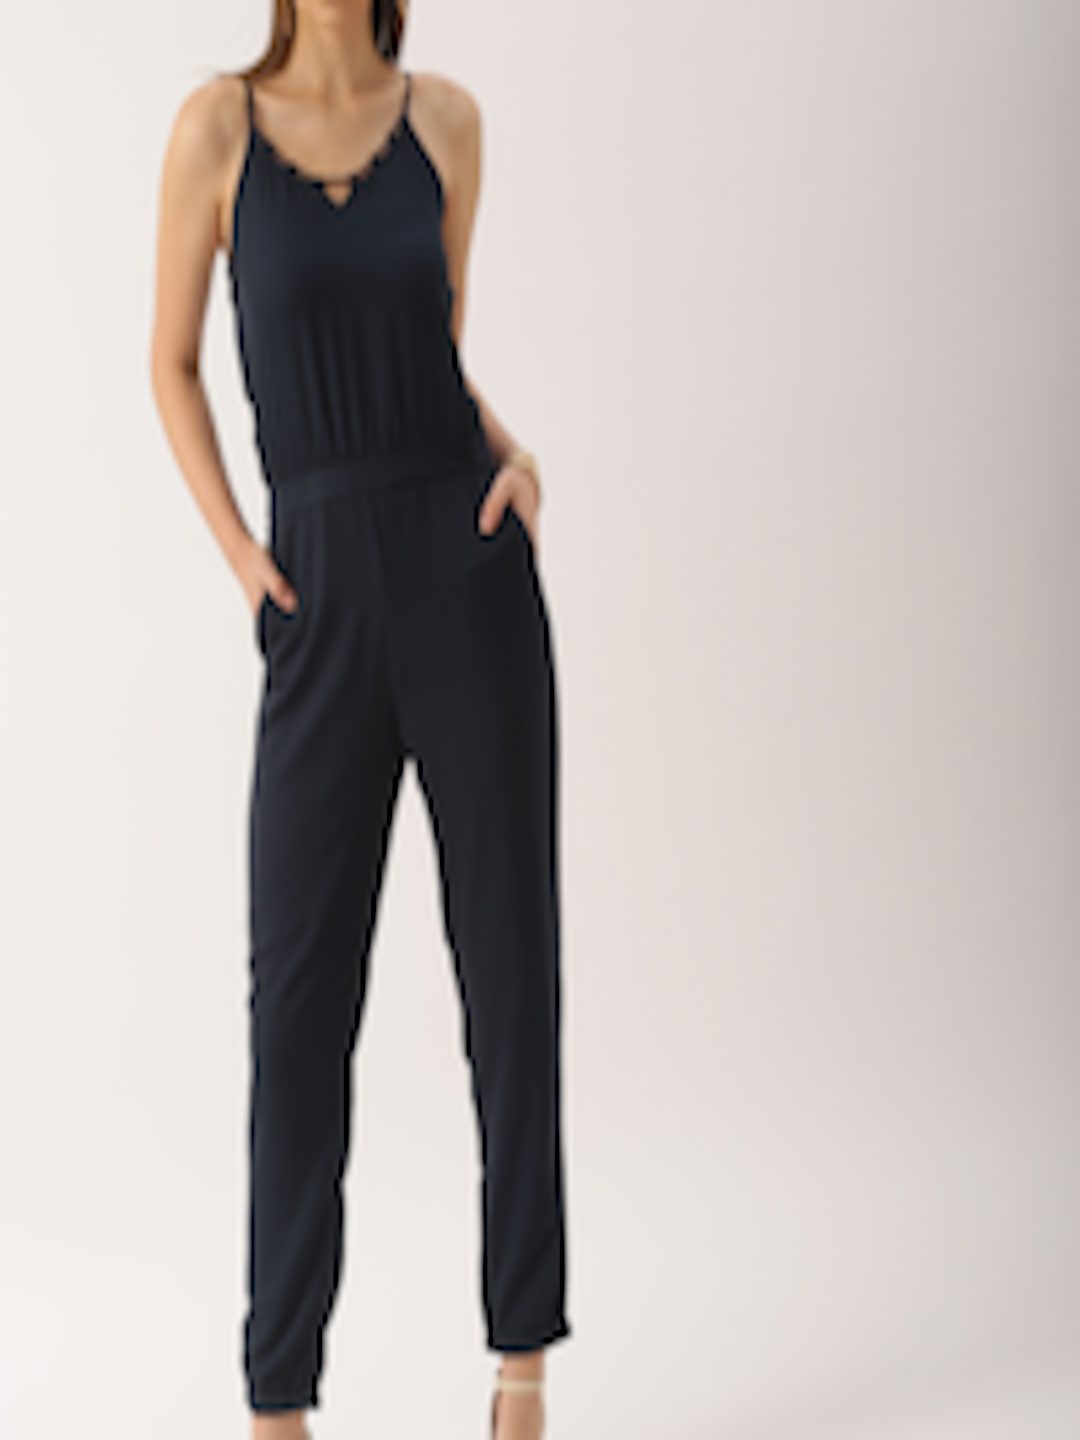 Buy All About You From Deepika Padukone Navy Jumpsuit ...